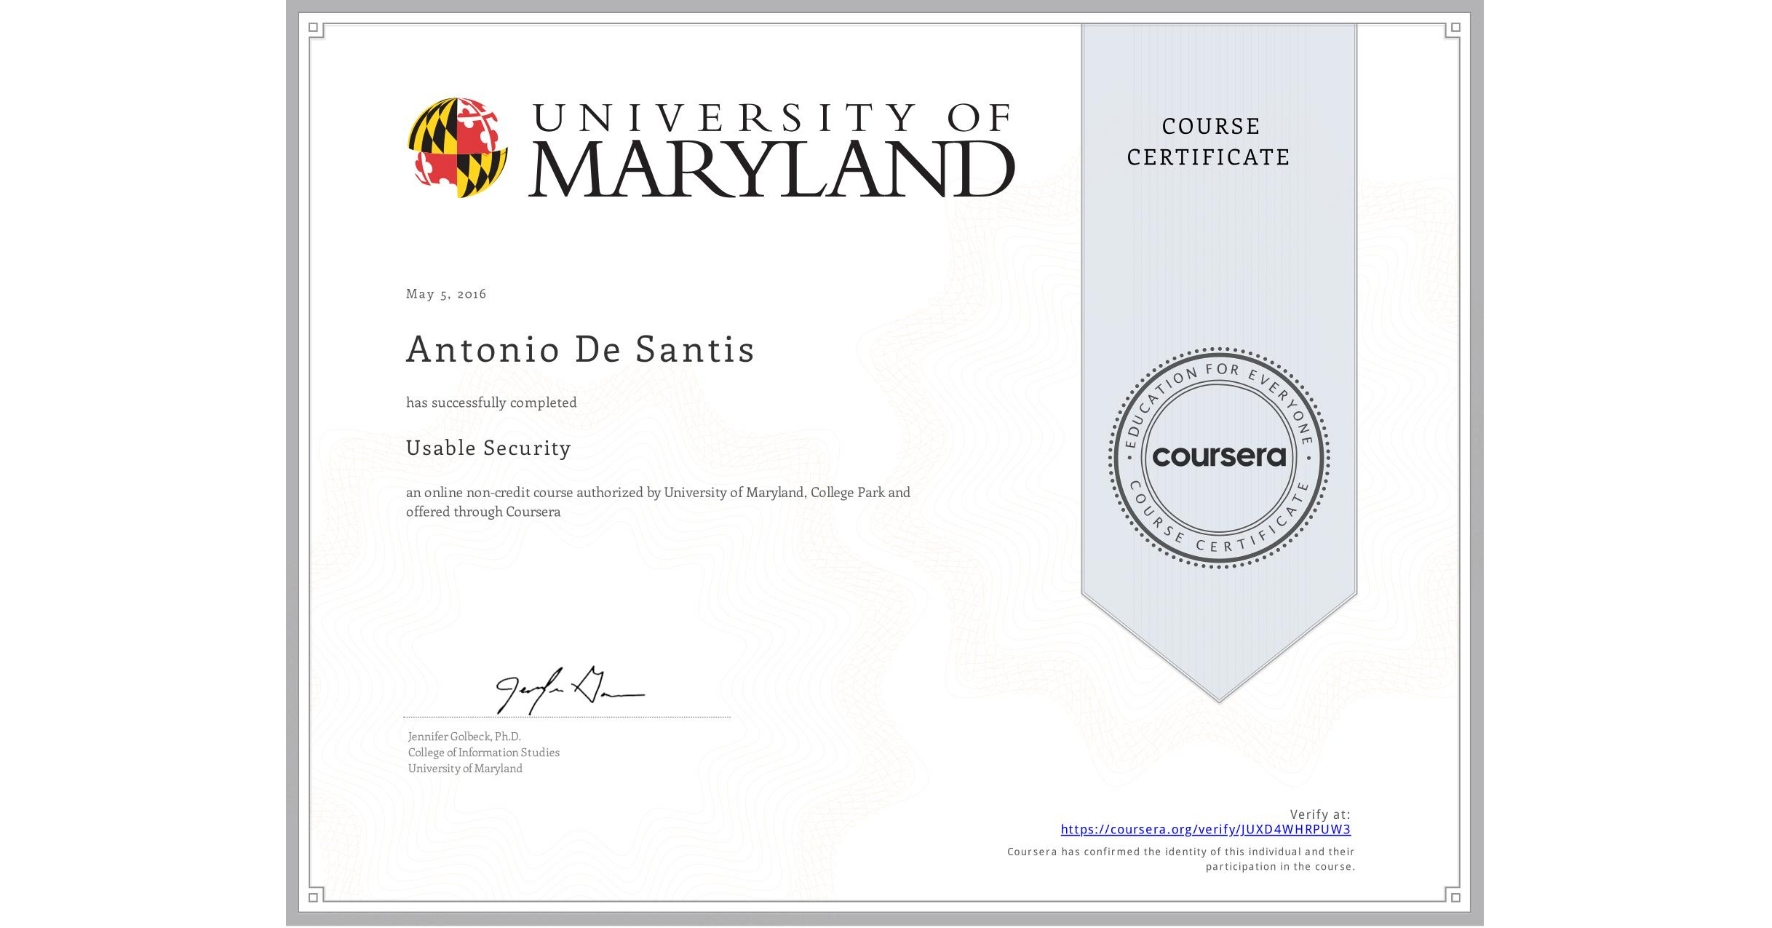 View certificate for Antonio De Santis, Usable Security, an online non-credit course authorized by University of Maryland, College Park and offered through Coursera